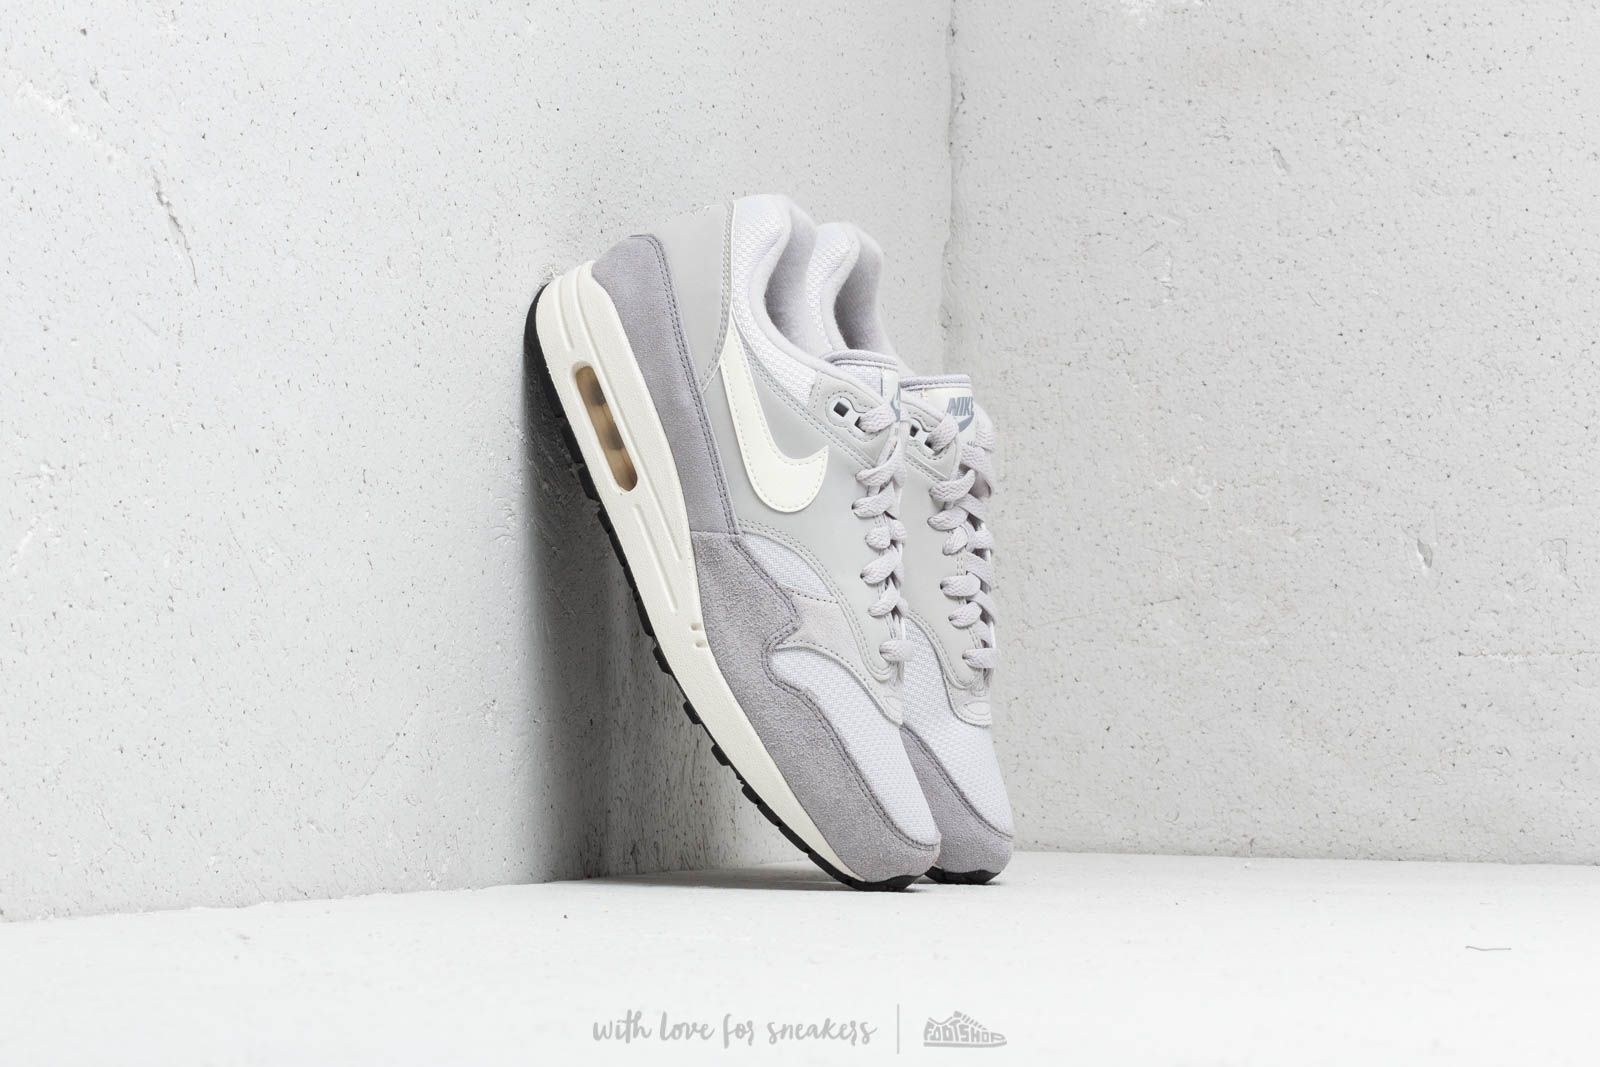 discount 294ab a5a59 Nike Air Max 1 Vast Grey  Sail-Sail-Wolf Grey at a great